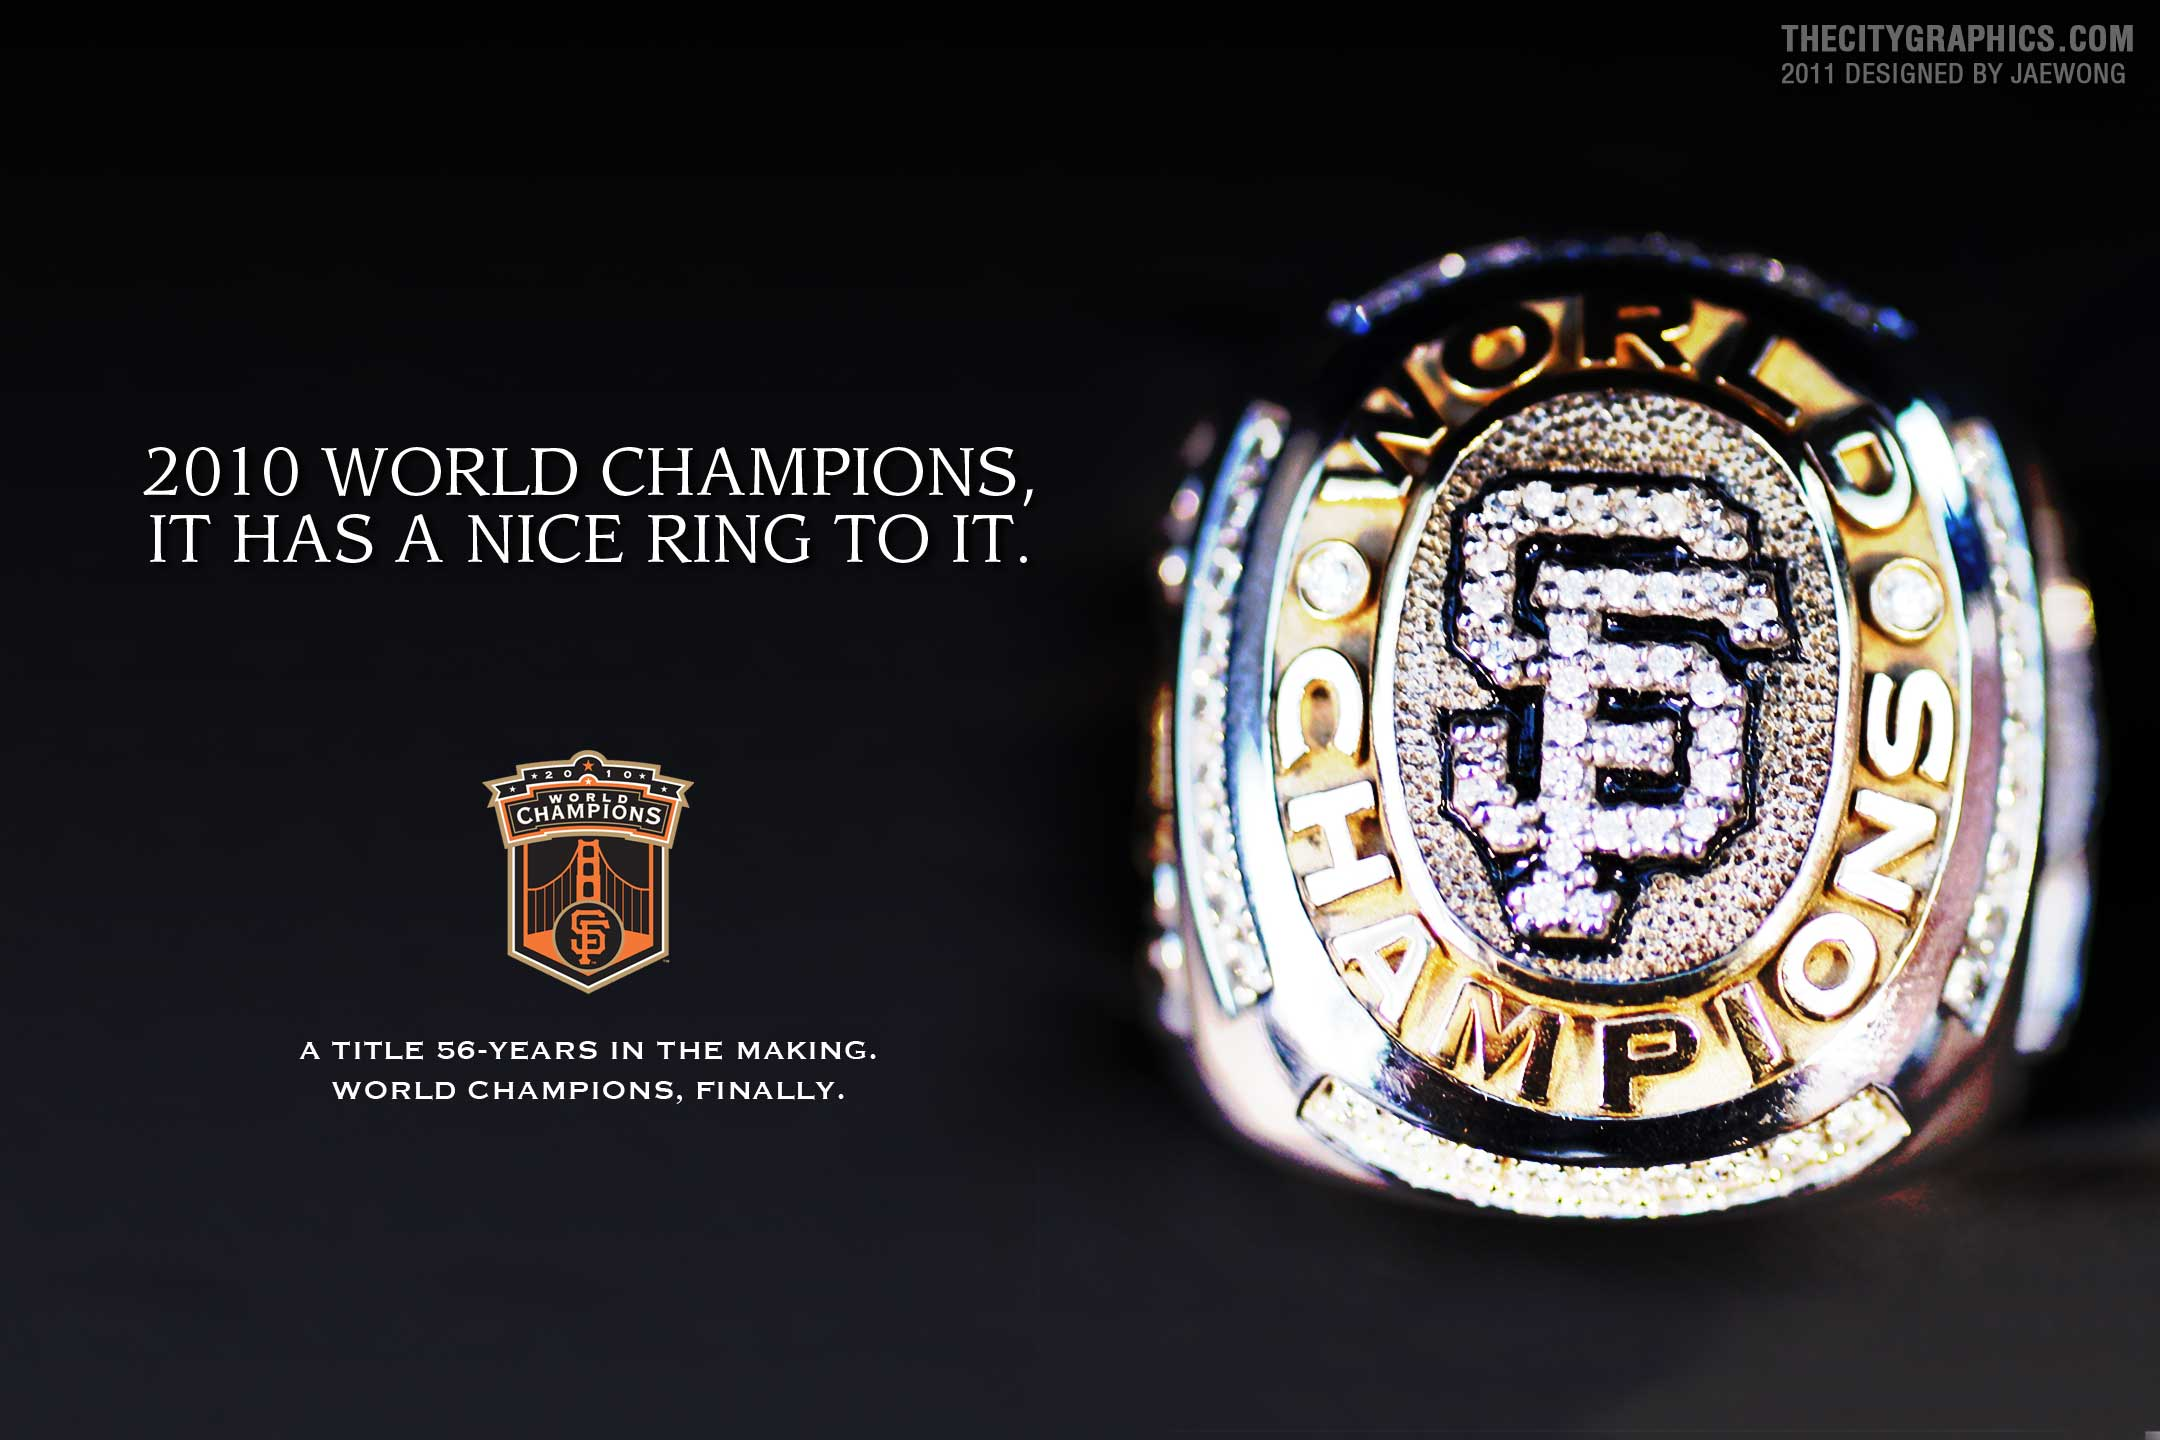 San Francisco Giants World Series Ring Hot News Now 2160x1440